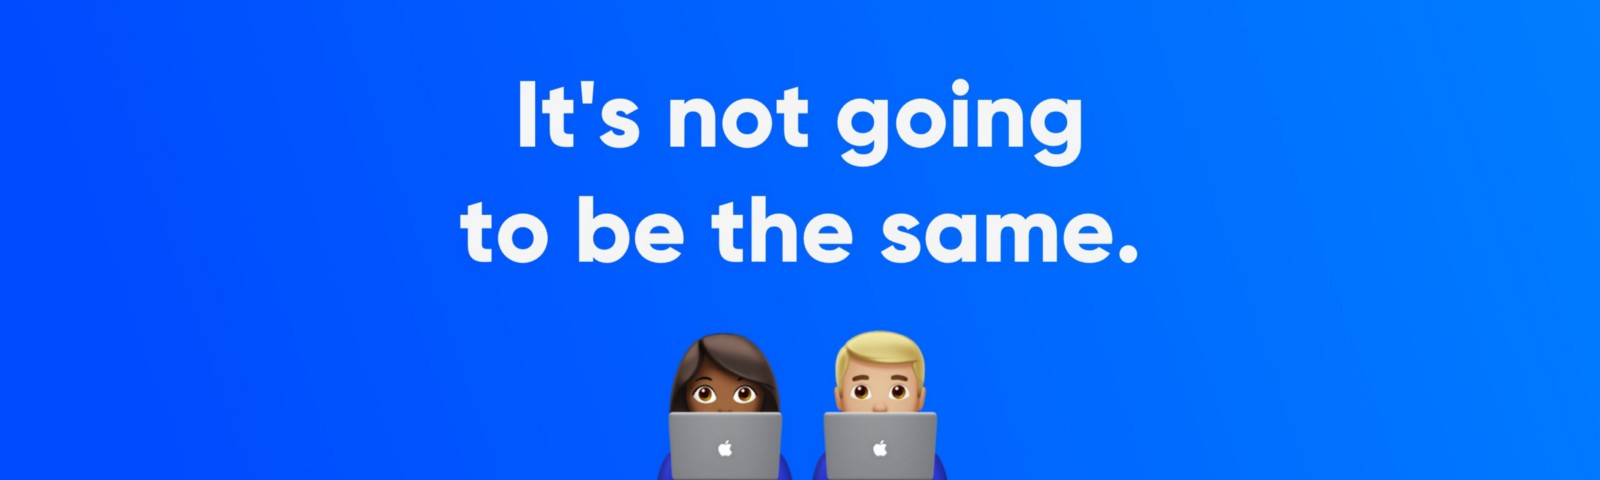 Digital design industry is not going to be the same.